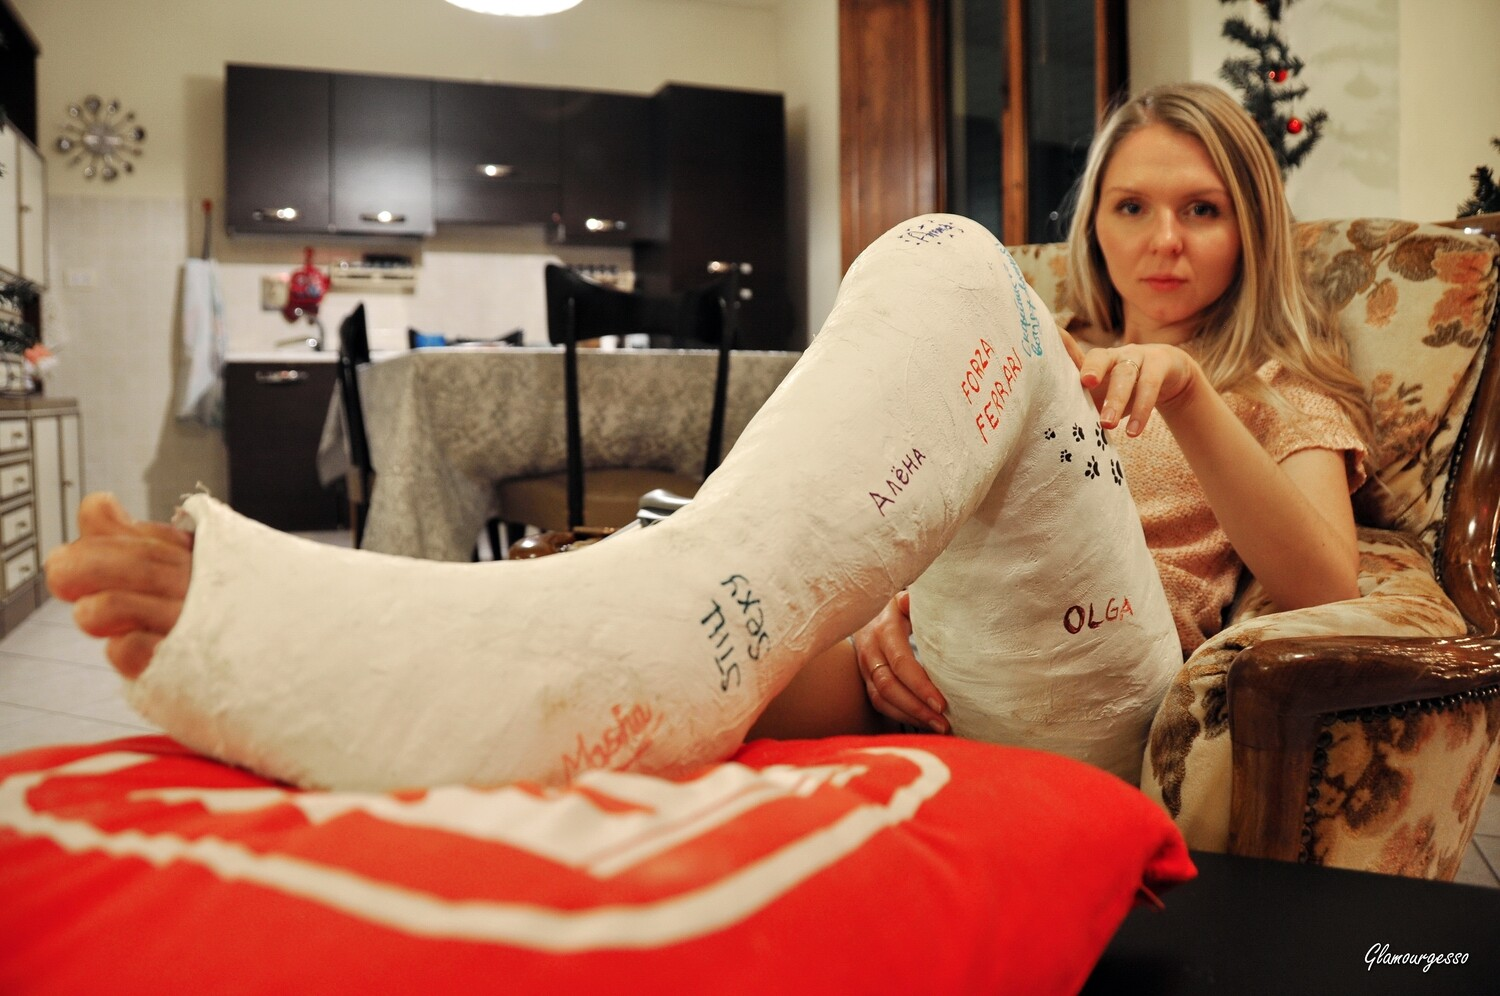 Ukrainian professional model Svitlana wears her severely ankle bent LLC. She seduces you with impressive close ups on her bent ankle, and talking about her feelings beeing in her huge and angled cast.